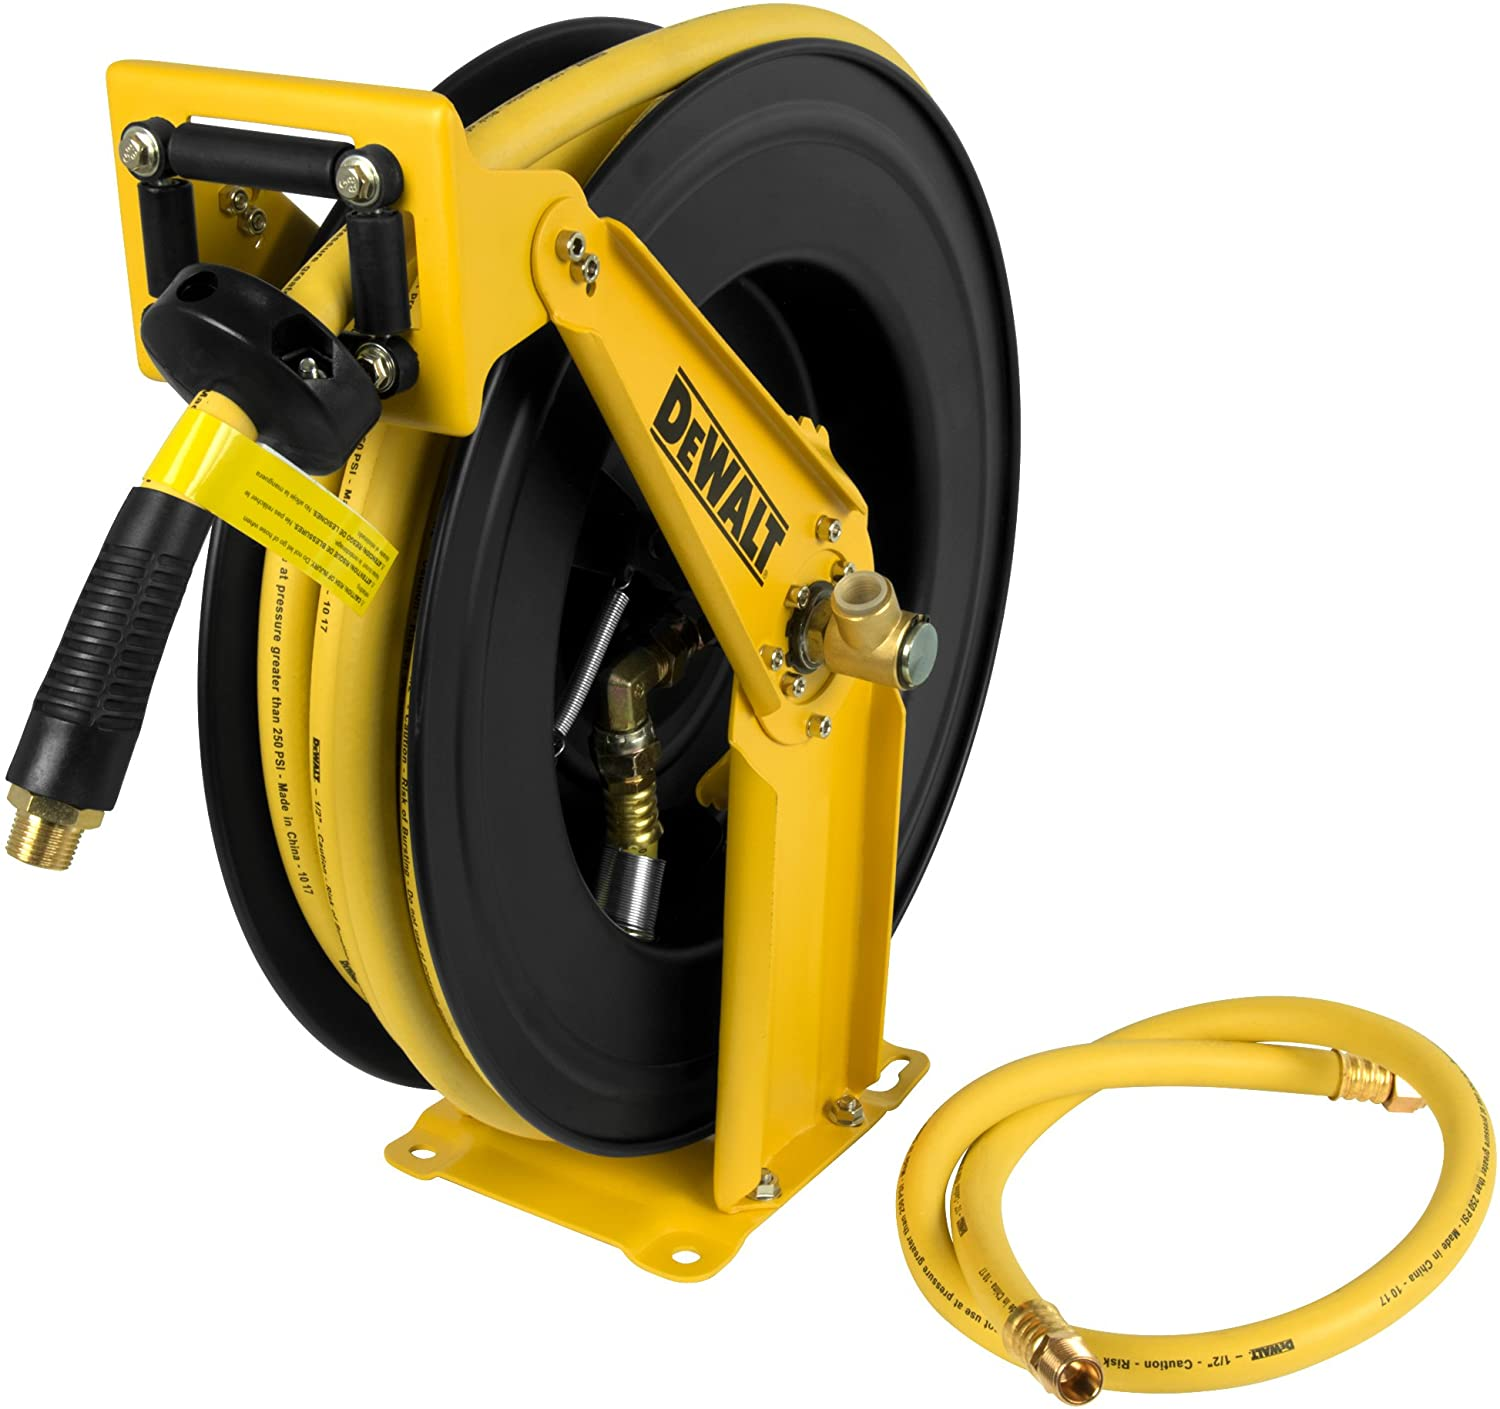 "DeWalt DXCM024-0344 Double Arm Hose Reel with 1/2"" x 50' Premium Rubber Hose - -"